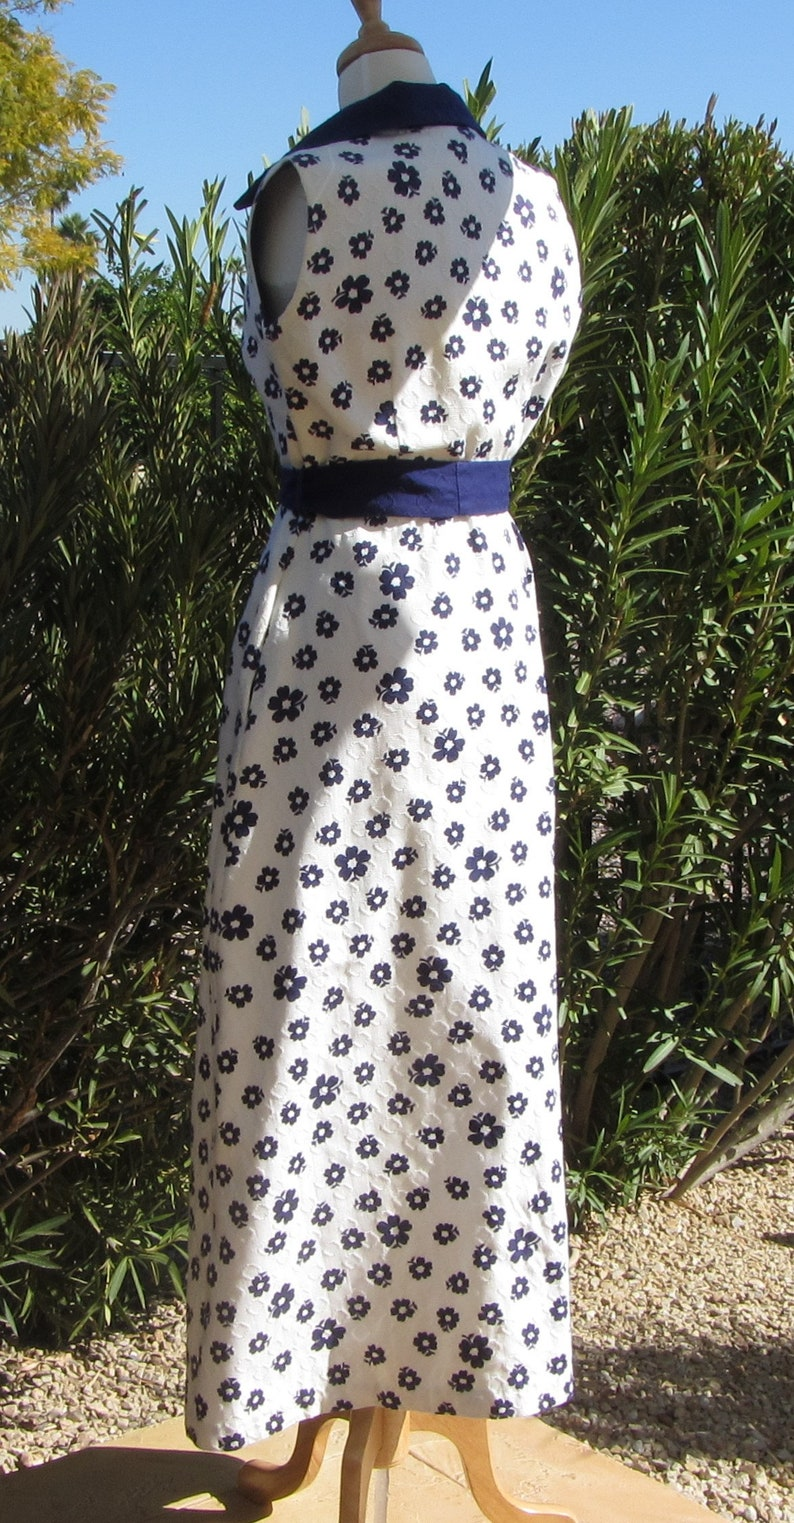 Saybury Vintage 60s Front Zipper Full Length Textured Cotton Hostess Dress White with Blue Flowers Sleeveless